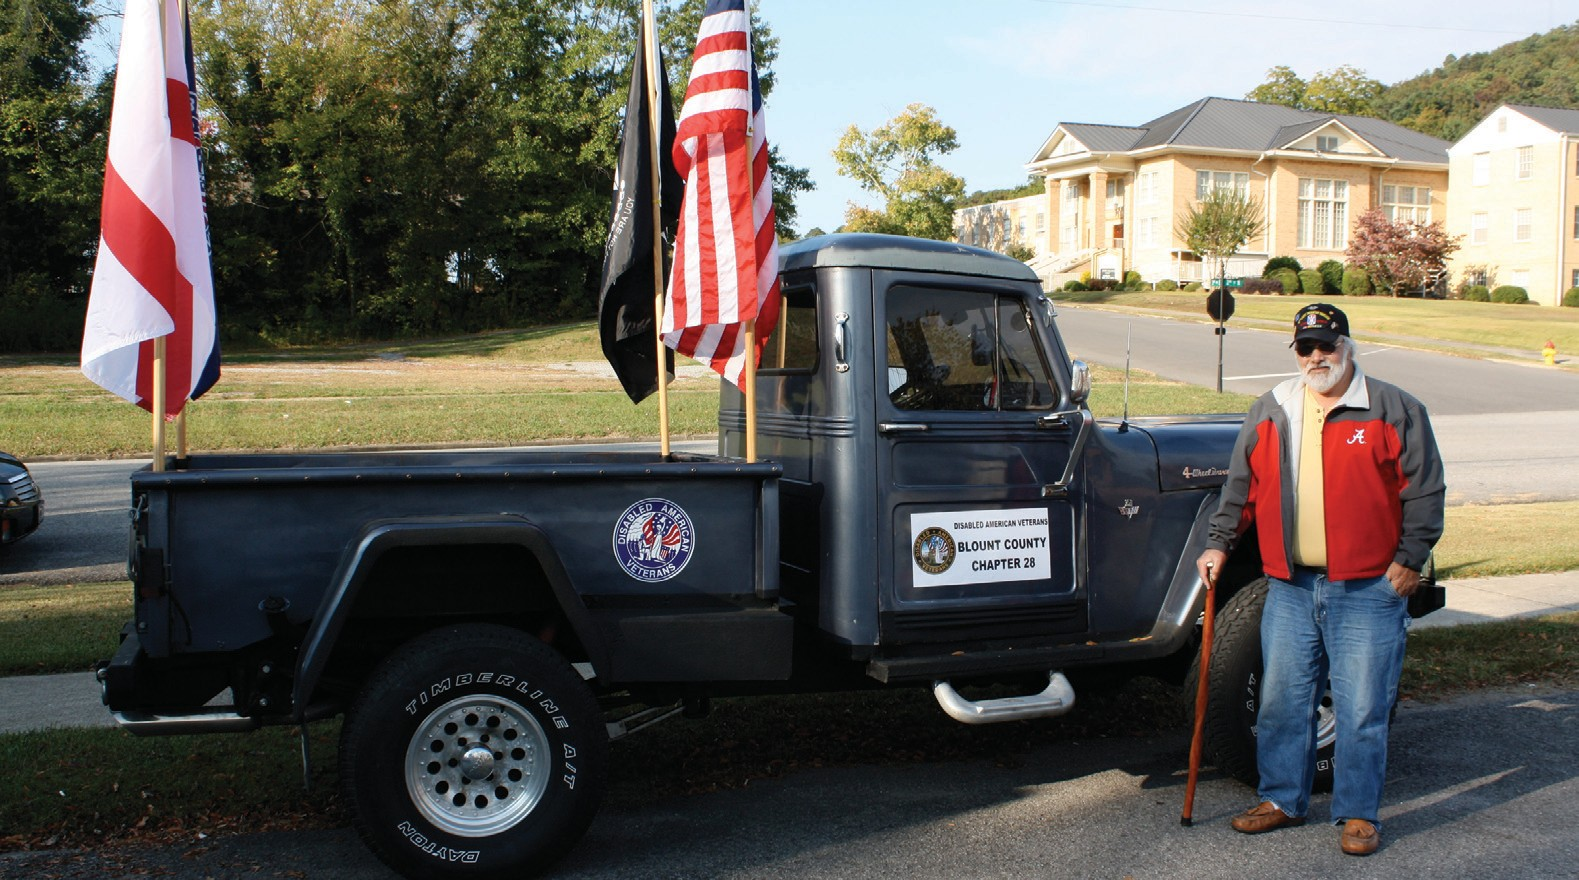 Vietnam Veteran Jeff Horn will drive his flag-decorated truck during the Veterans Parade on Saturday.